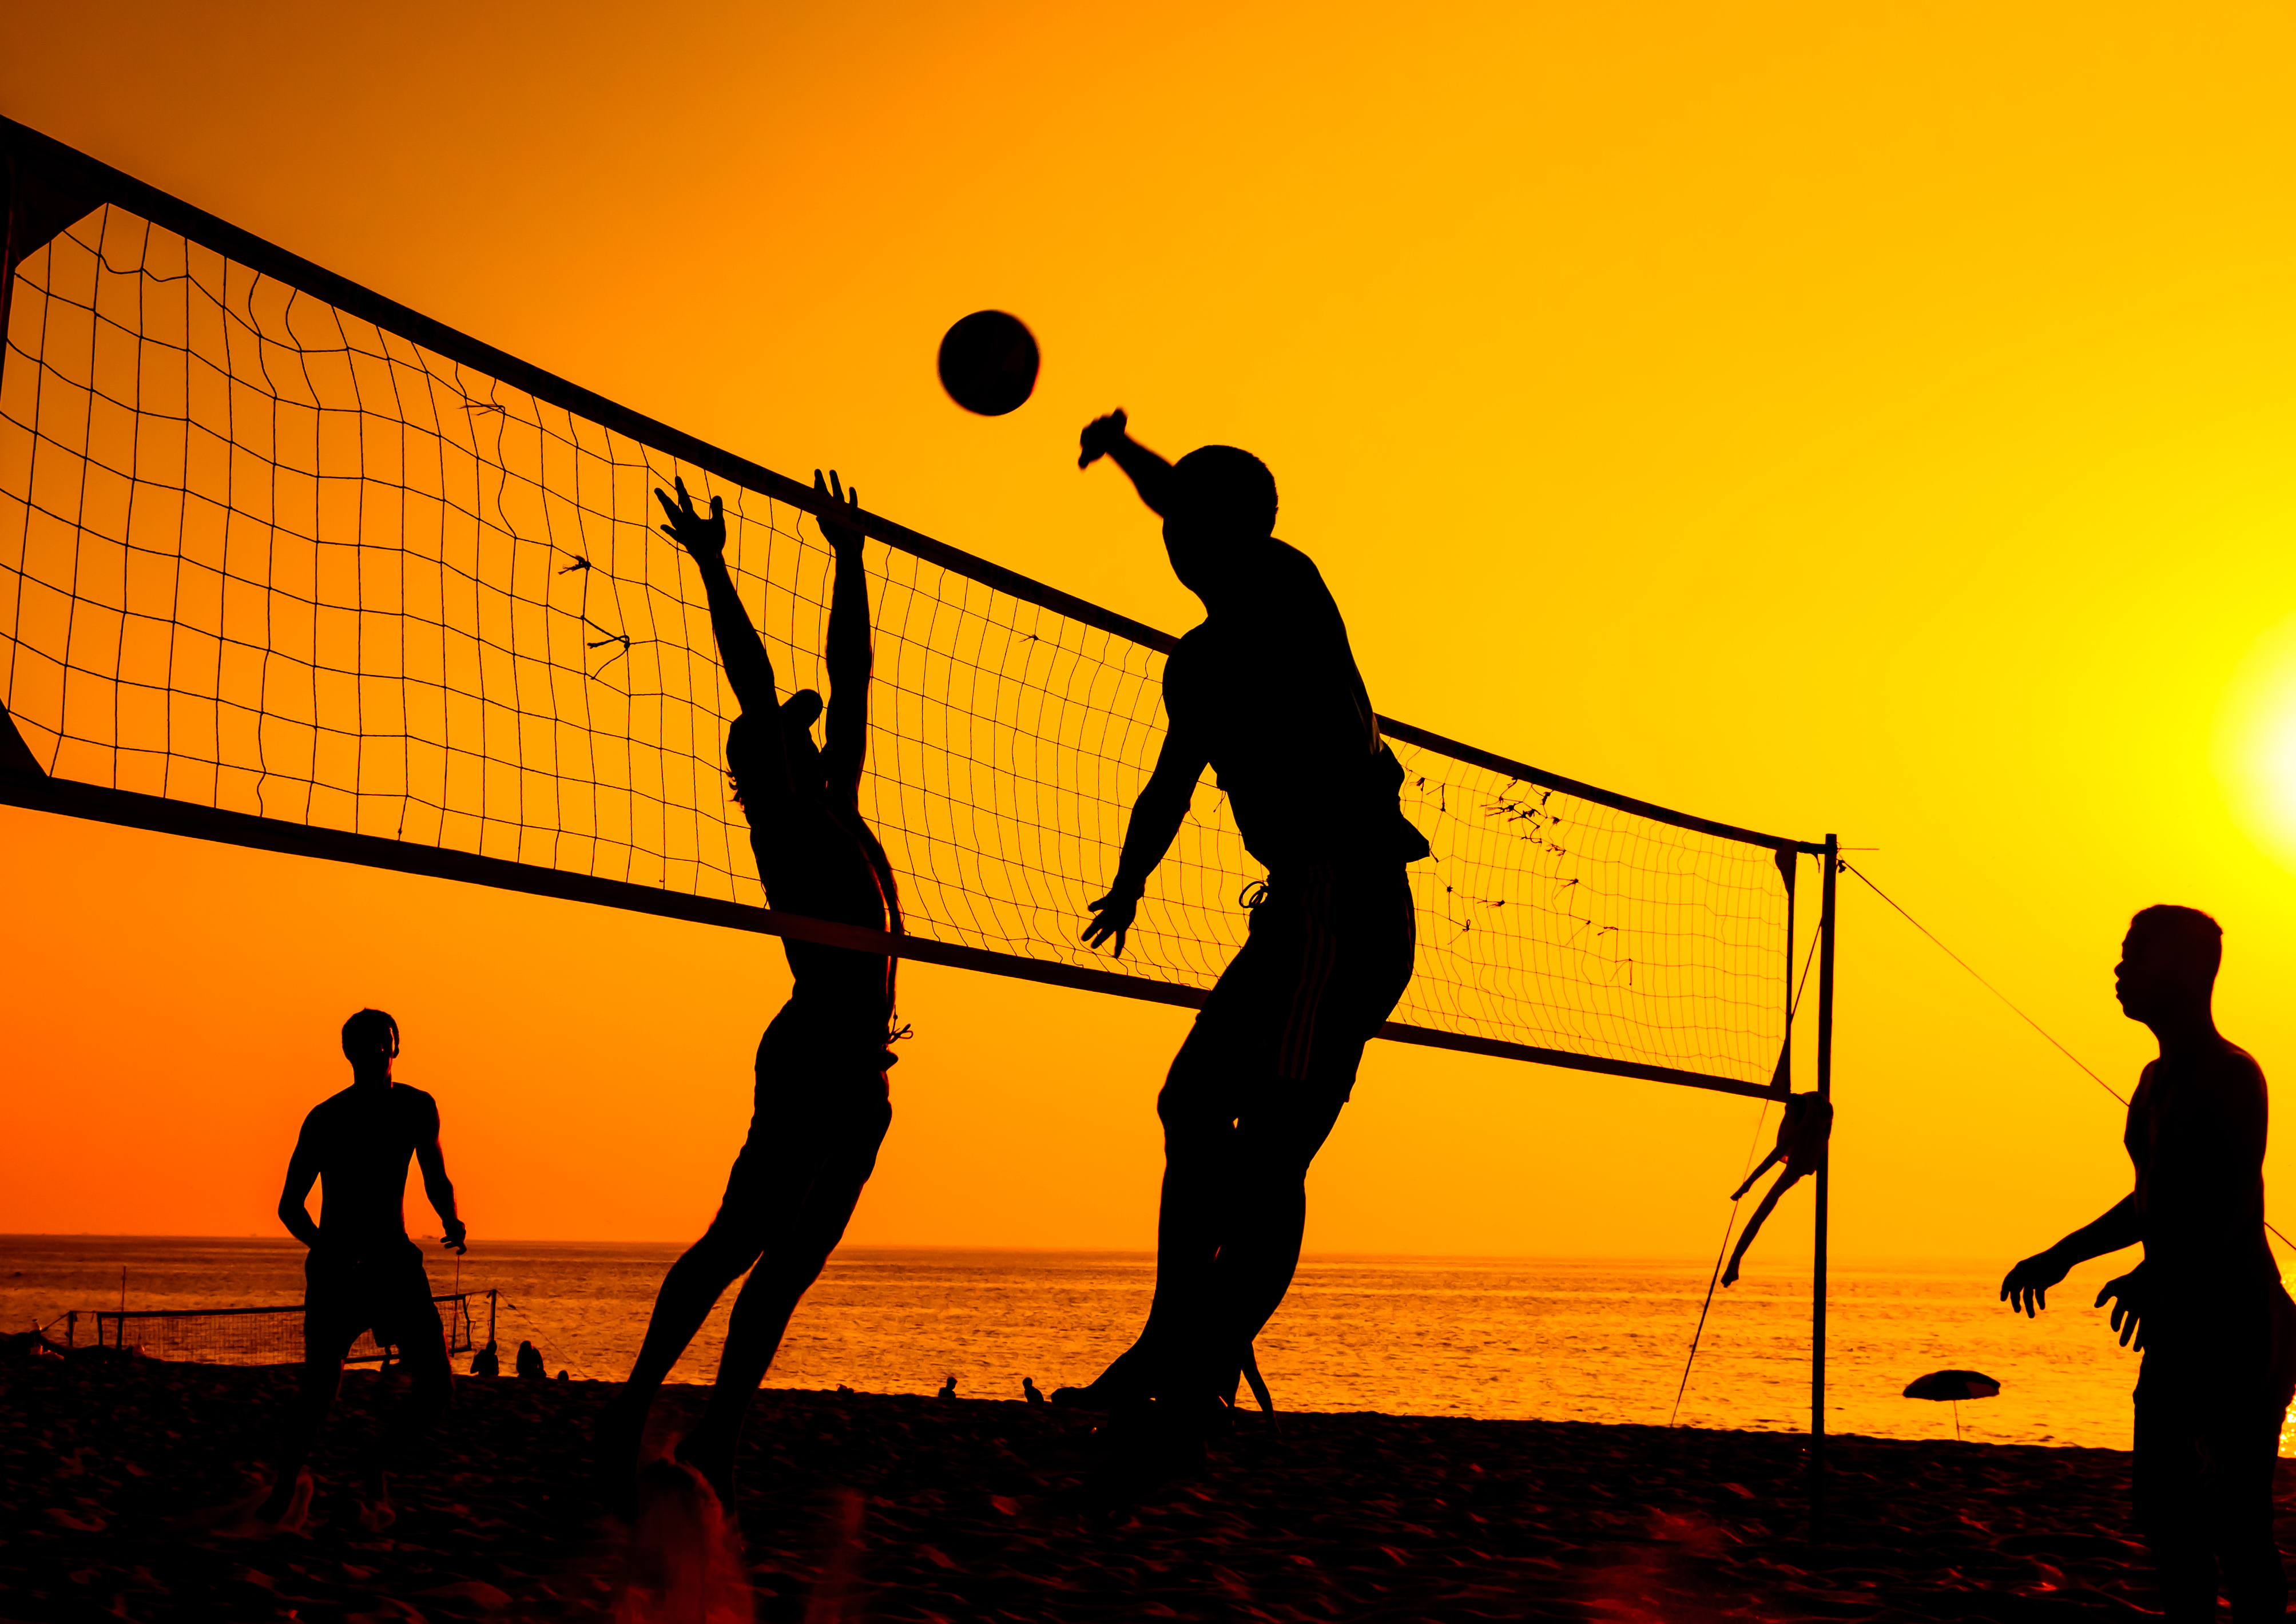 Volleyball Backgrounds: Volleyball Wallpapers HD Backgrounds